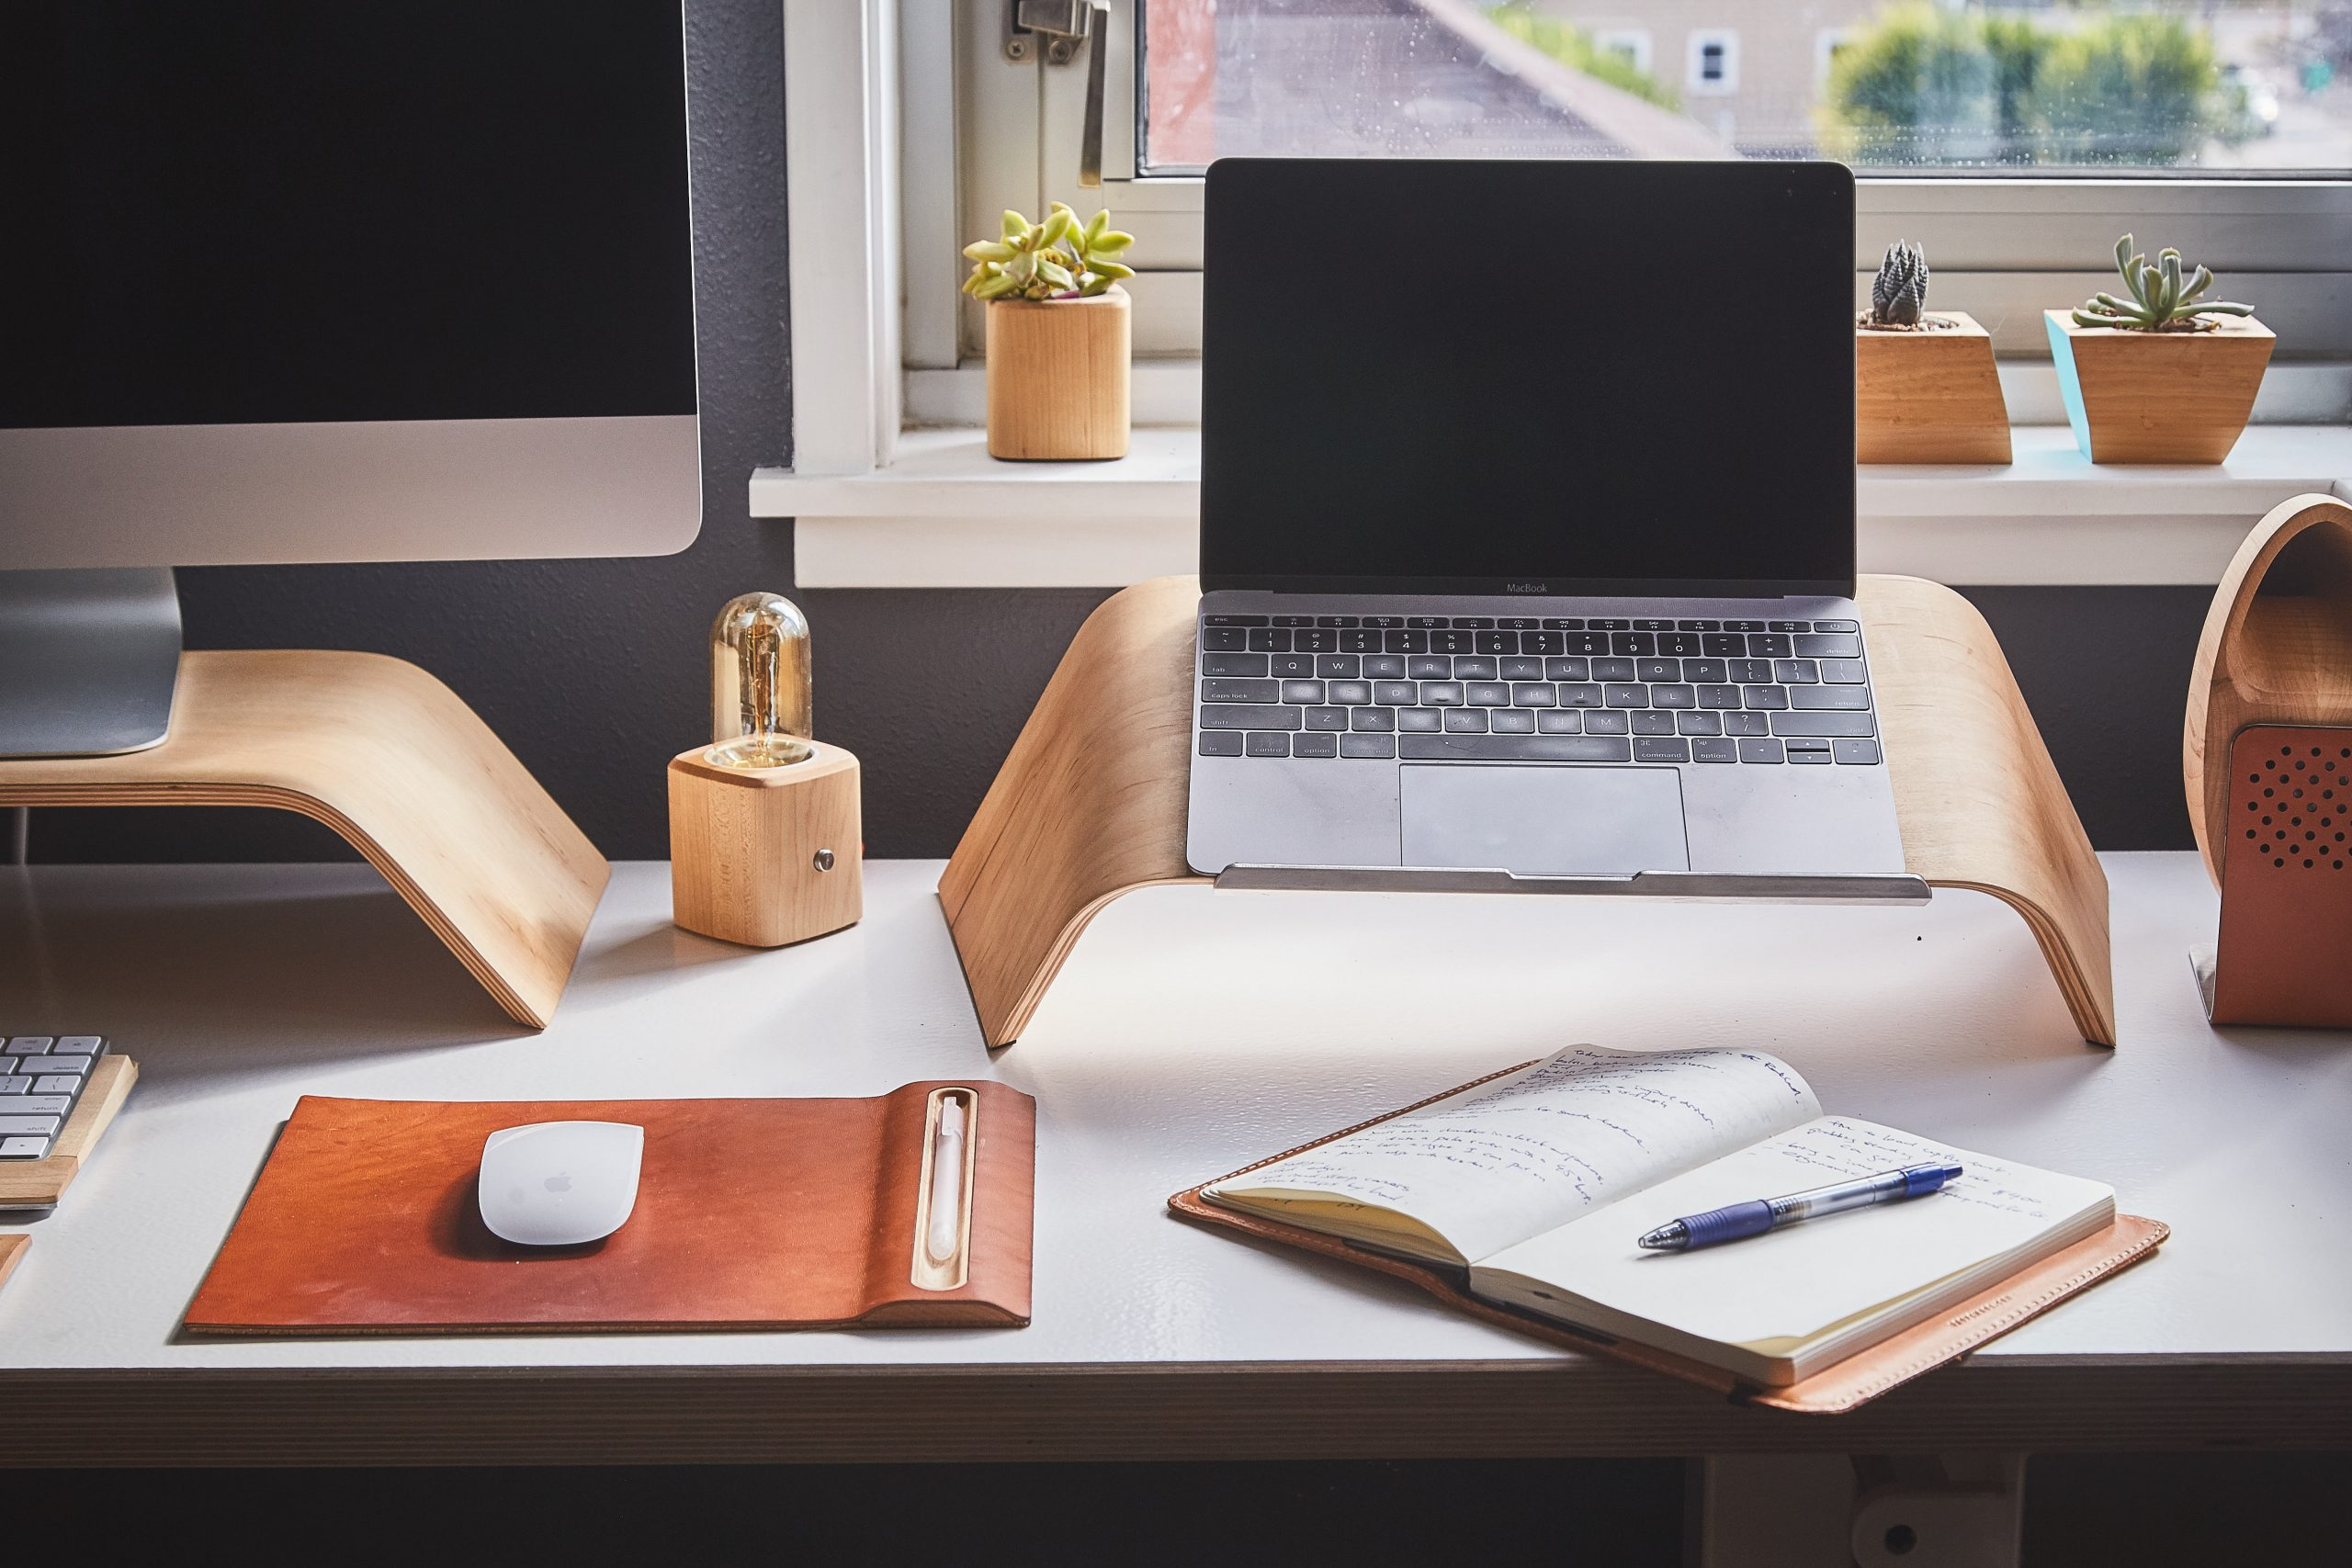 Amazing Design Ideas to Make Your Home Office More Comfortable